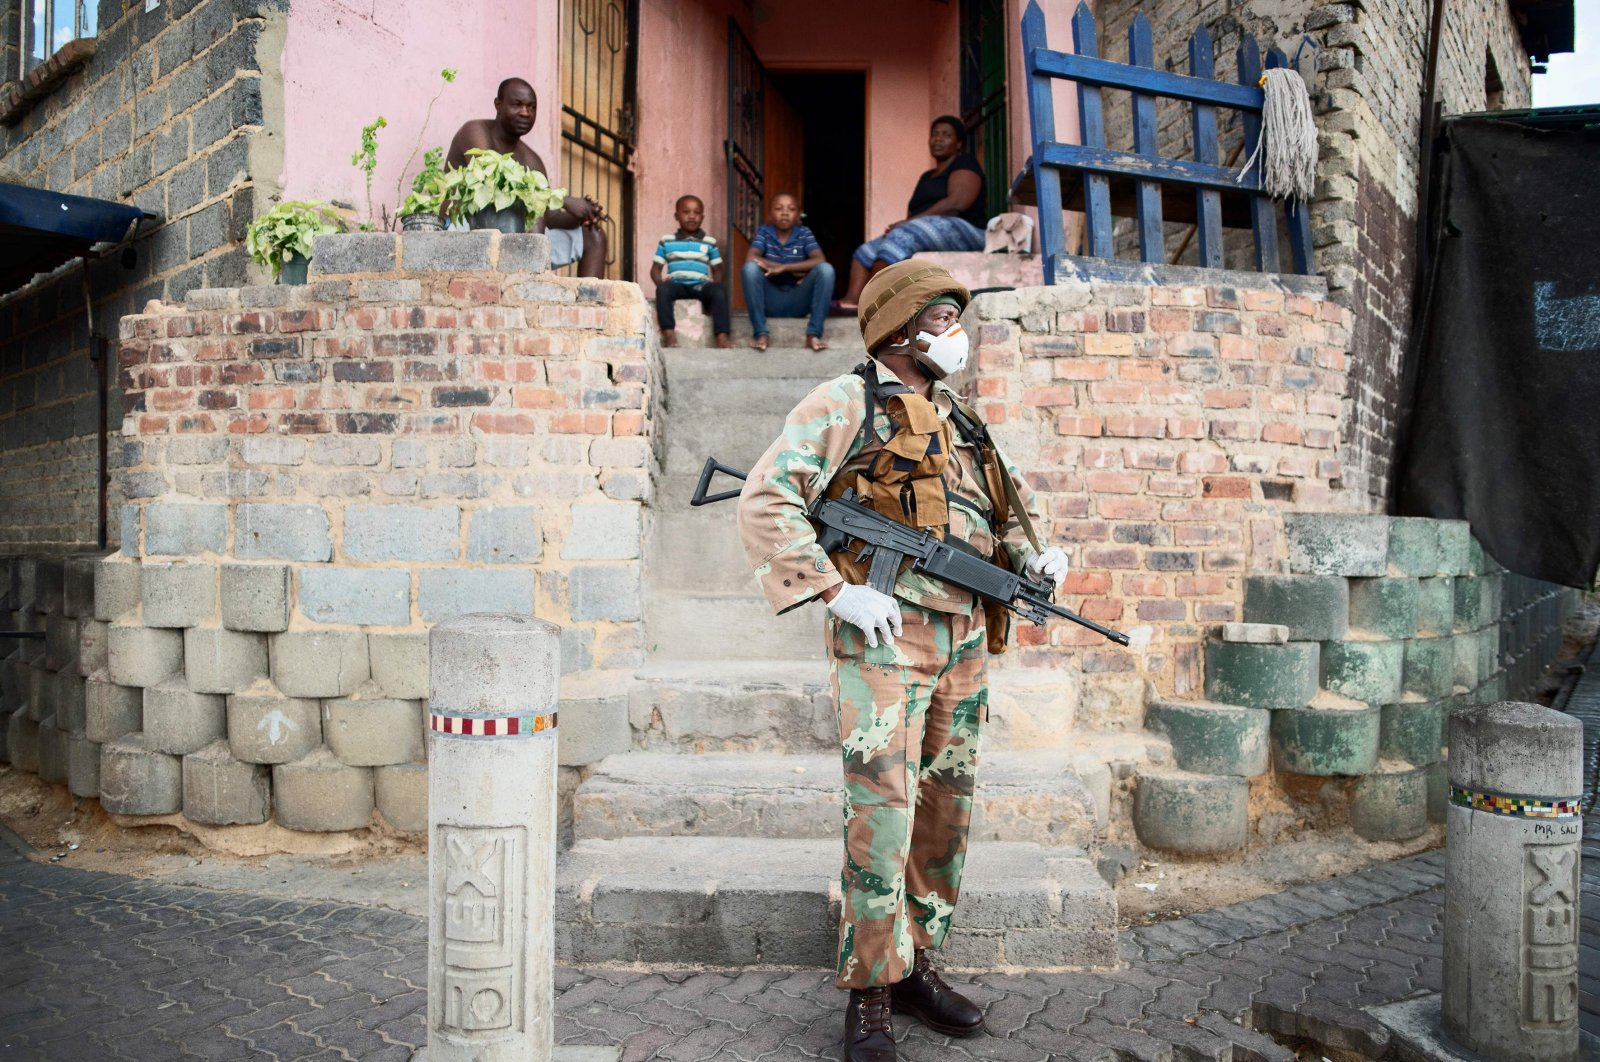 A South African National Defence Force (SANDF) soldier stands in front of a house as he patrols the streets in Alexandra, Johannesburg, on Friday, March 27, 2020 during a joint operation with the South African Police Service (SAPS) in order prevent the spread of the COVID-19 coronavirus outbreak. (AFP Photo)